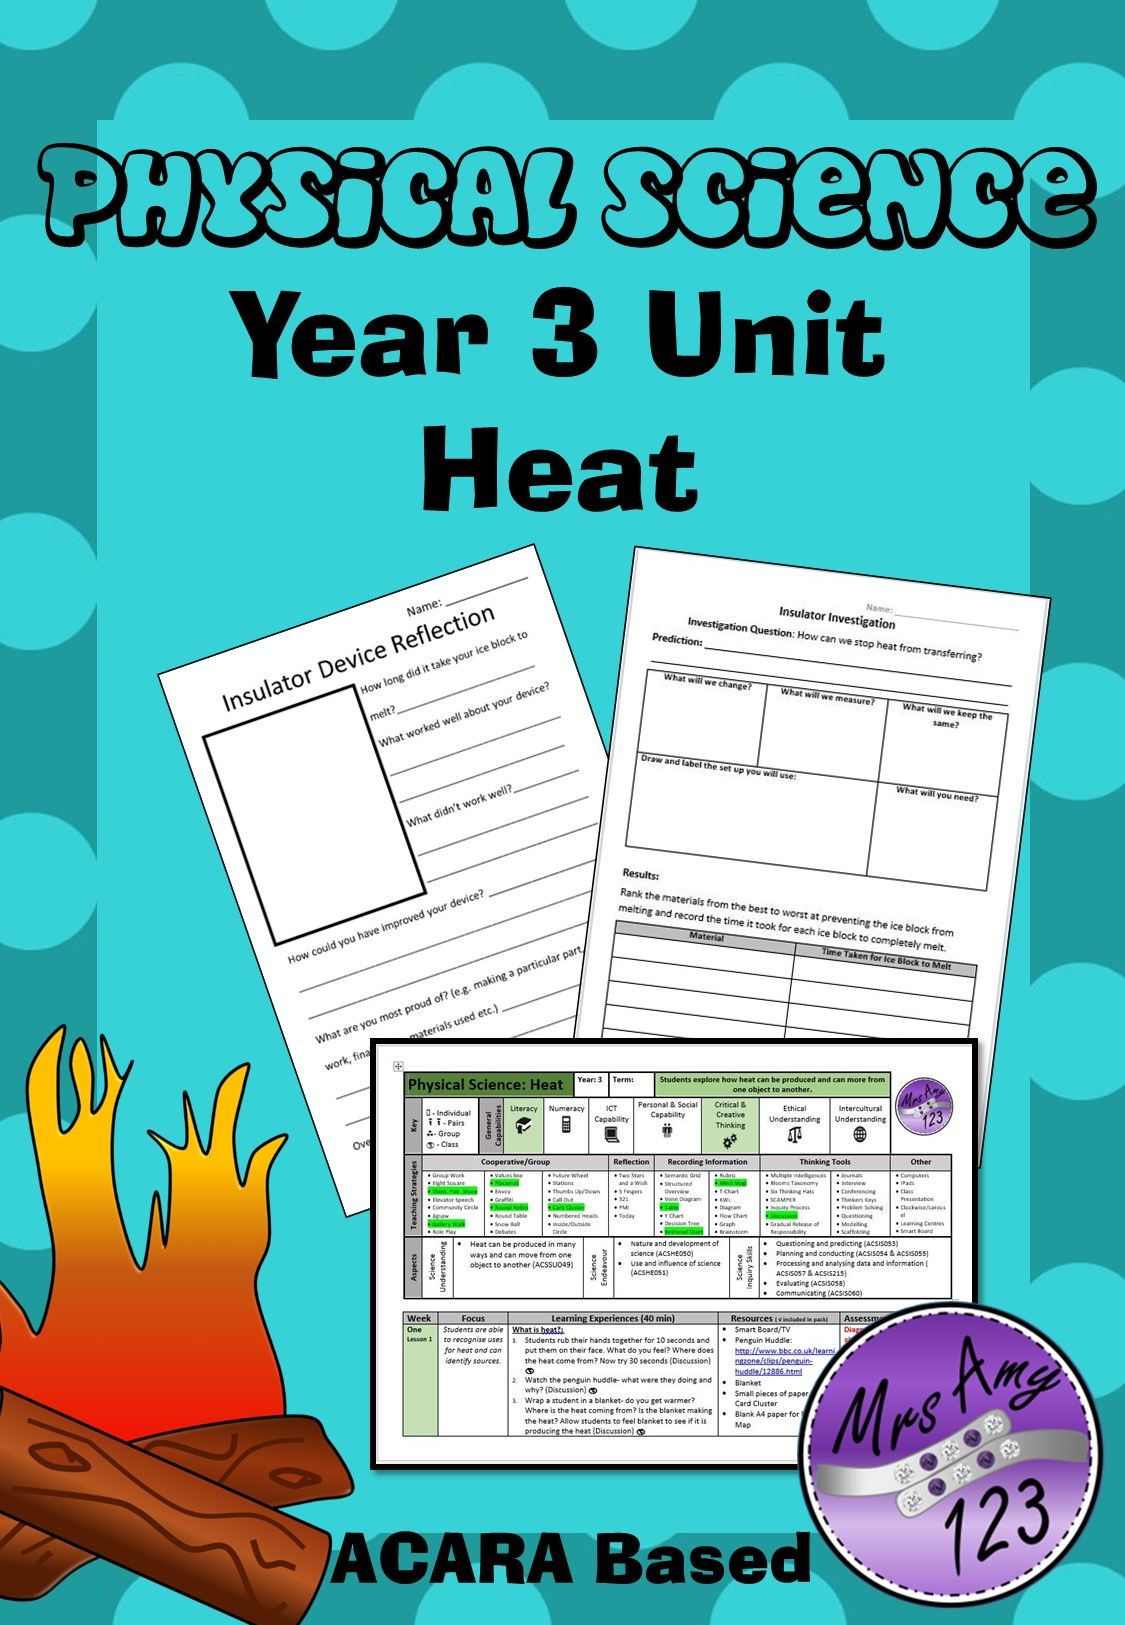 Physical Science Year 3 Heat Unit